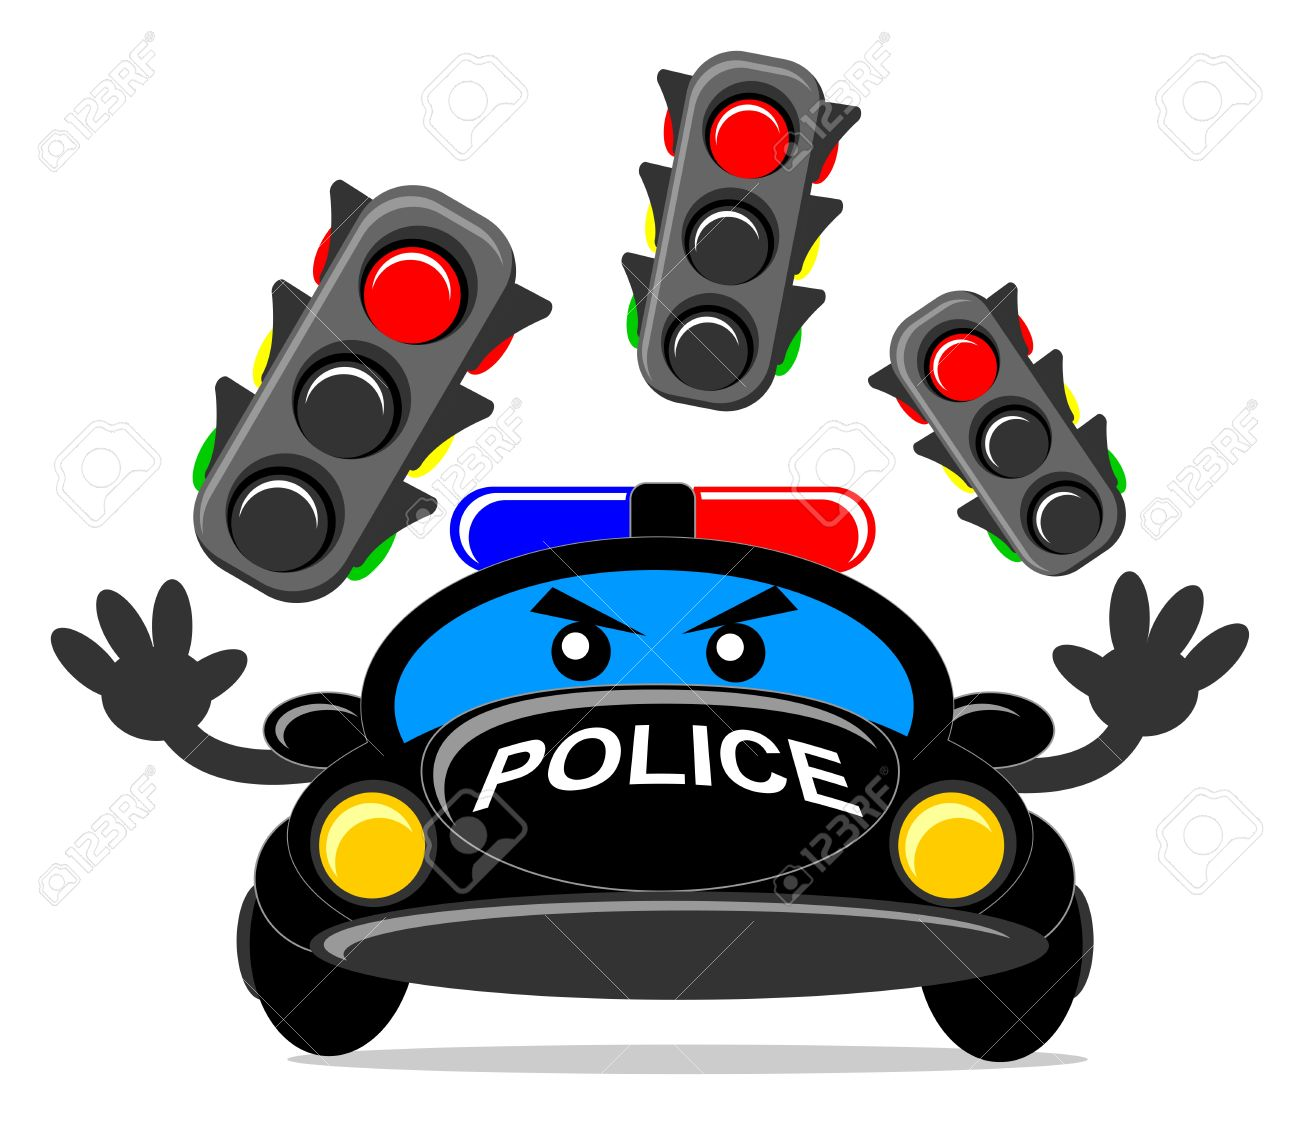 illustration of cartoon police car royalty free cliparts vectors